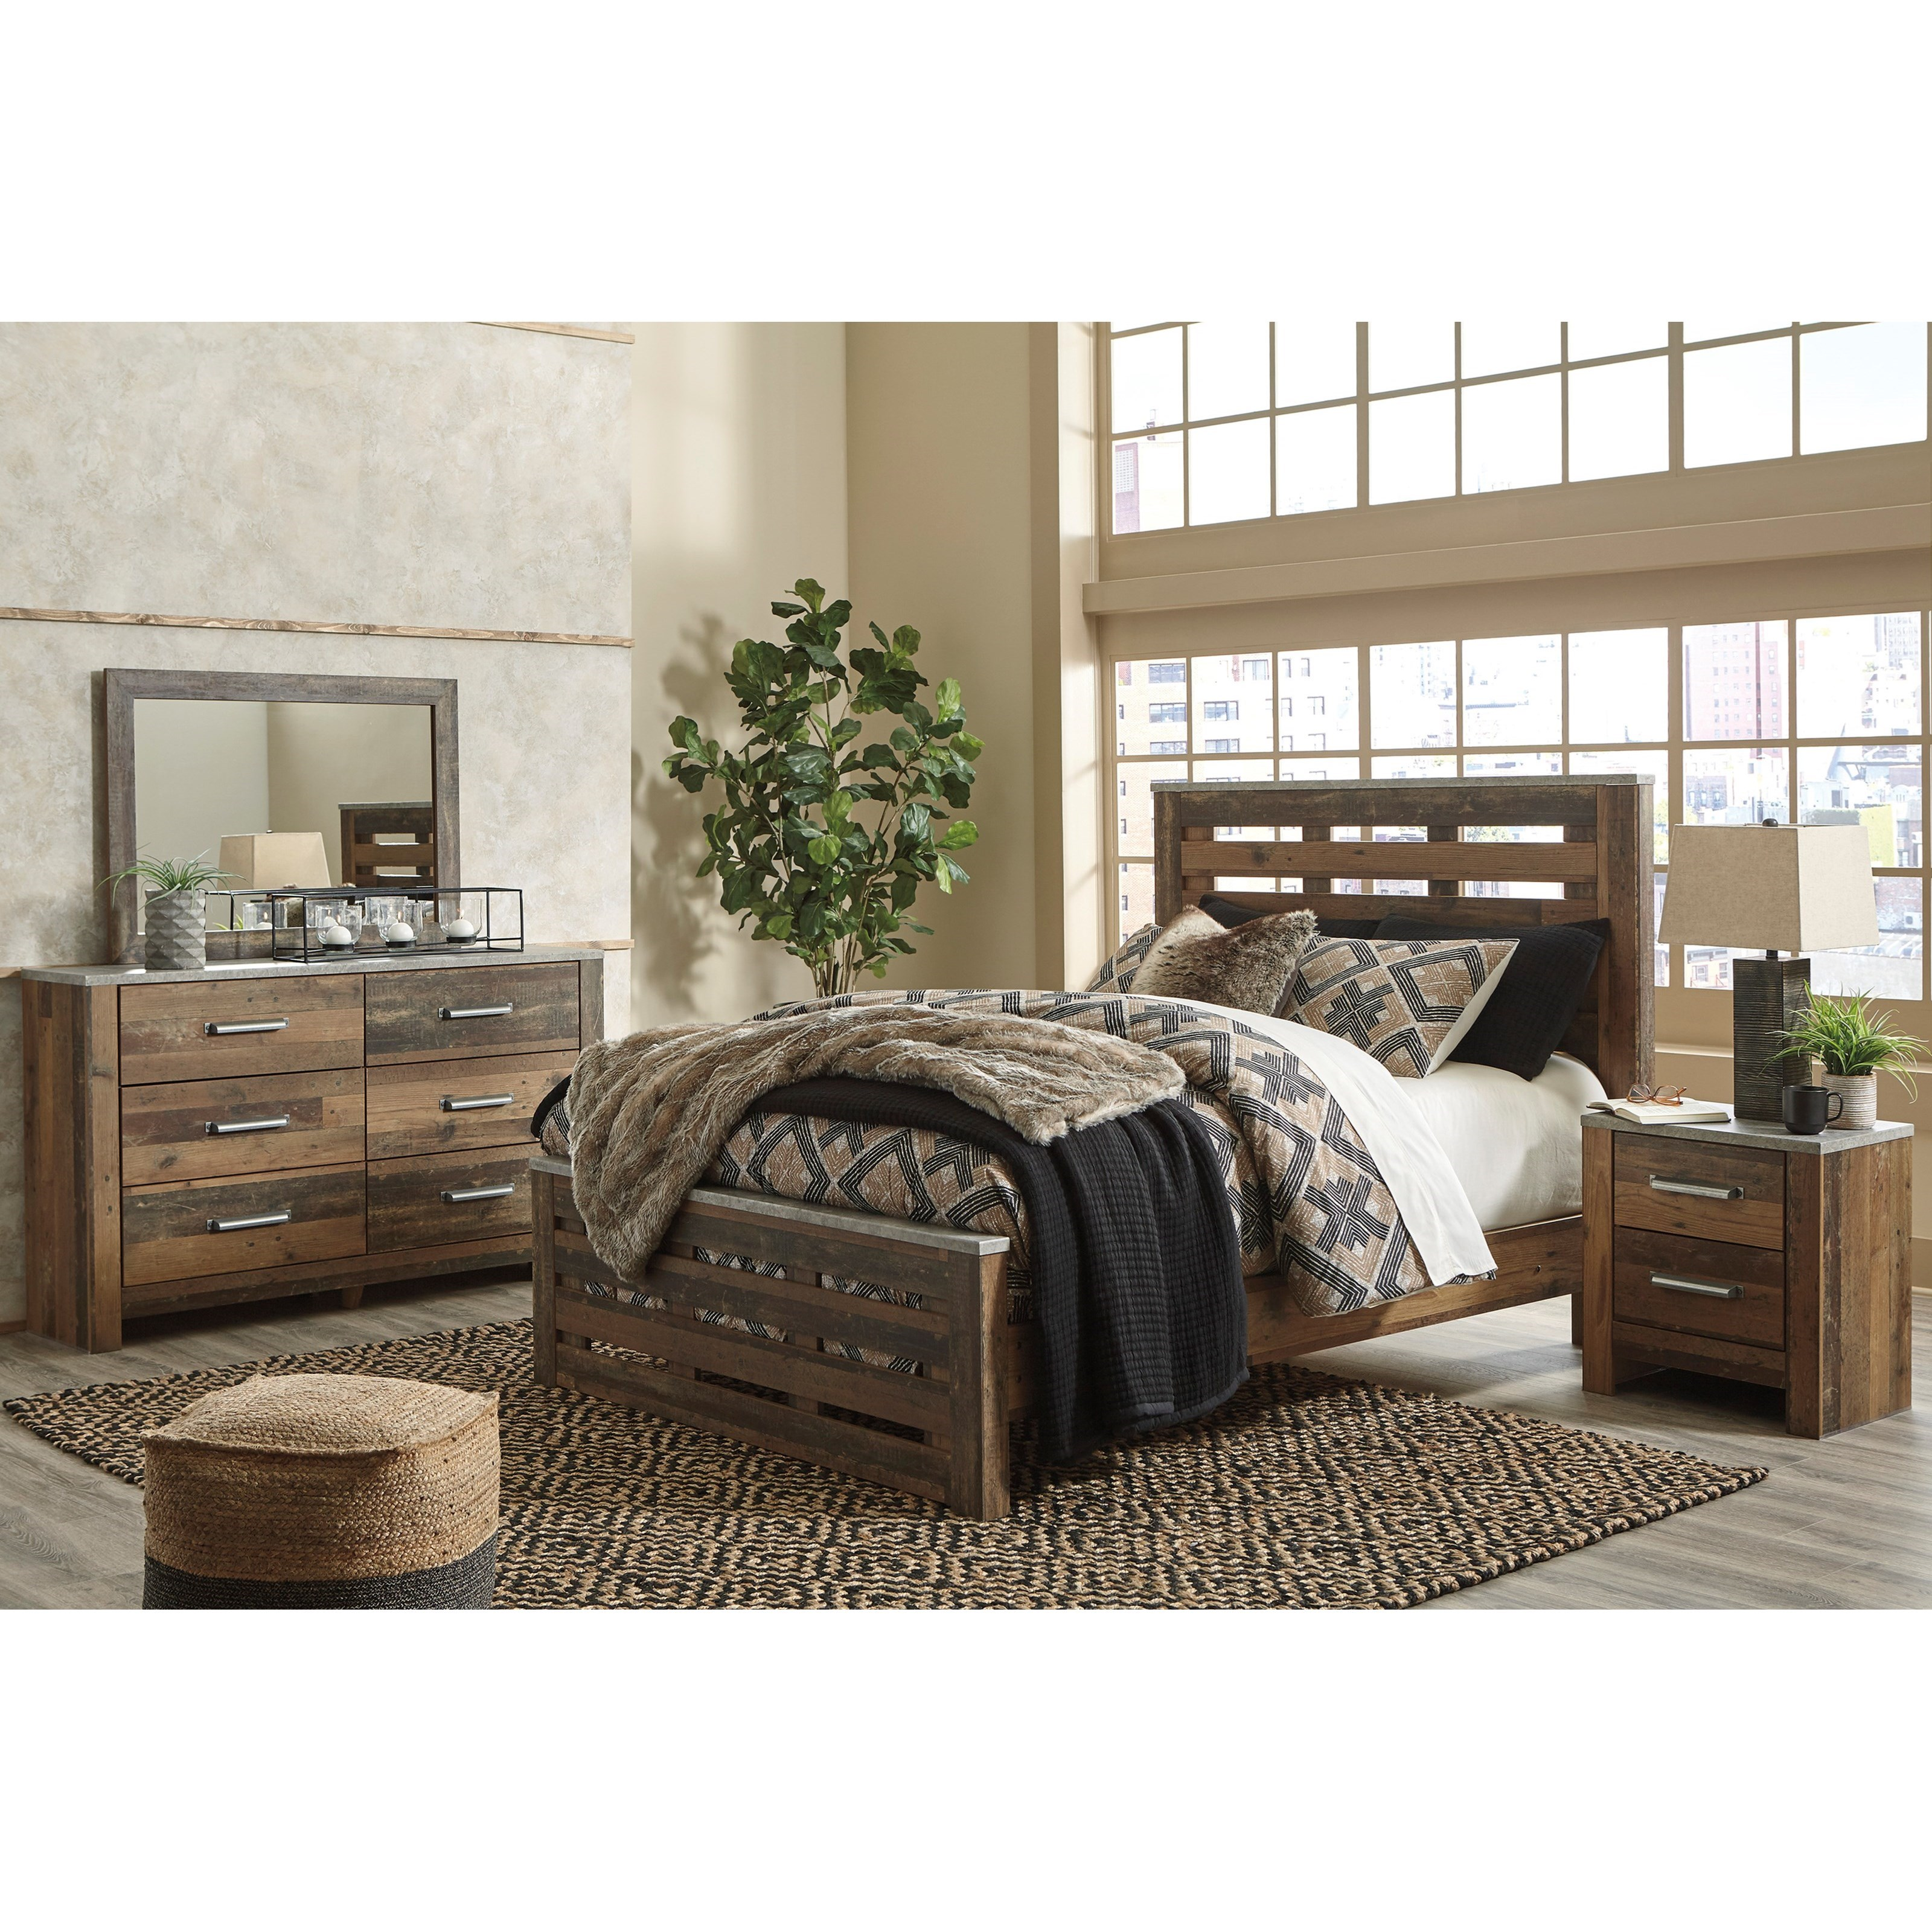 Chadbrook Queen Bedroom Group by Benchcraft at Northeast Factory Direct